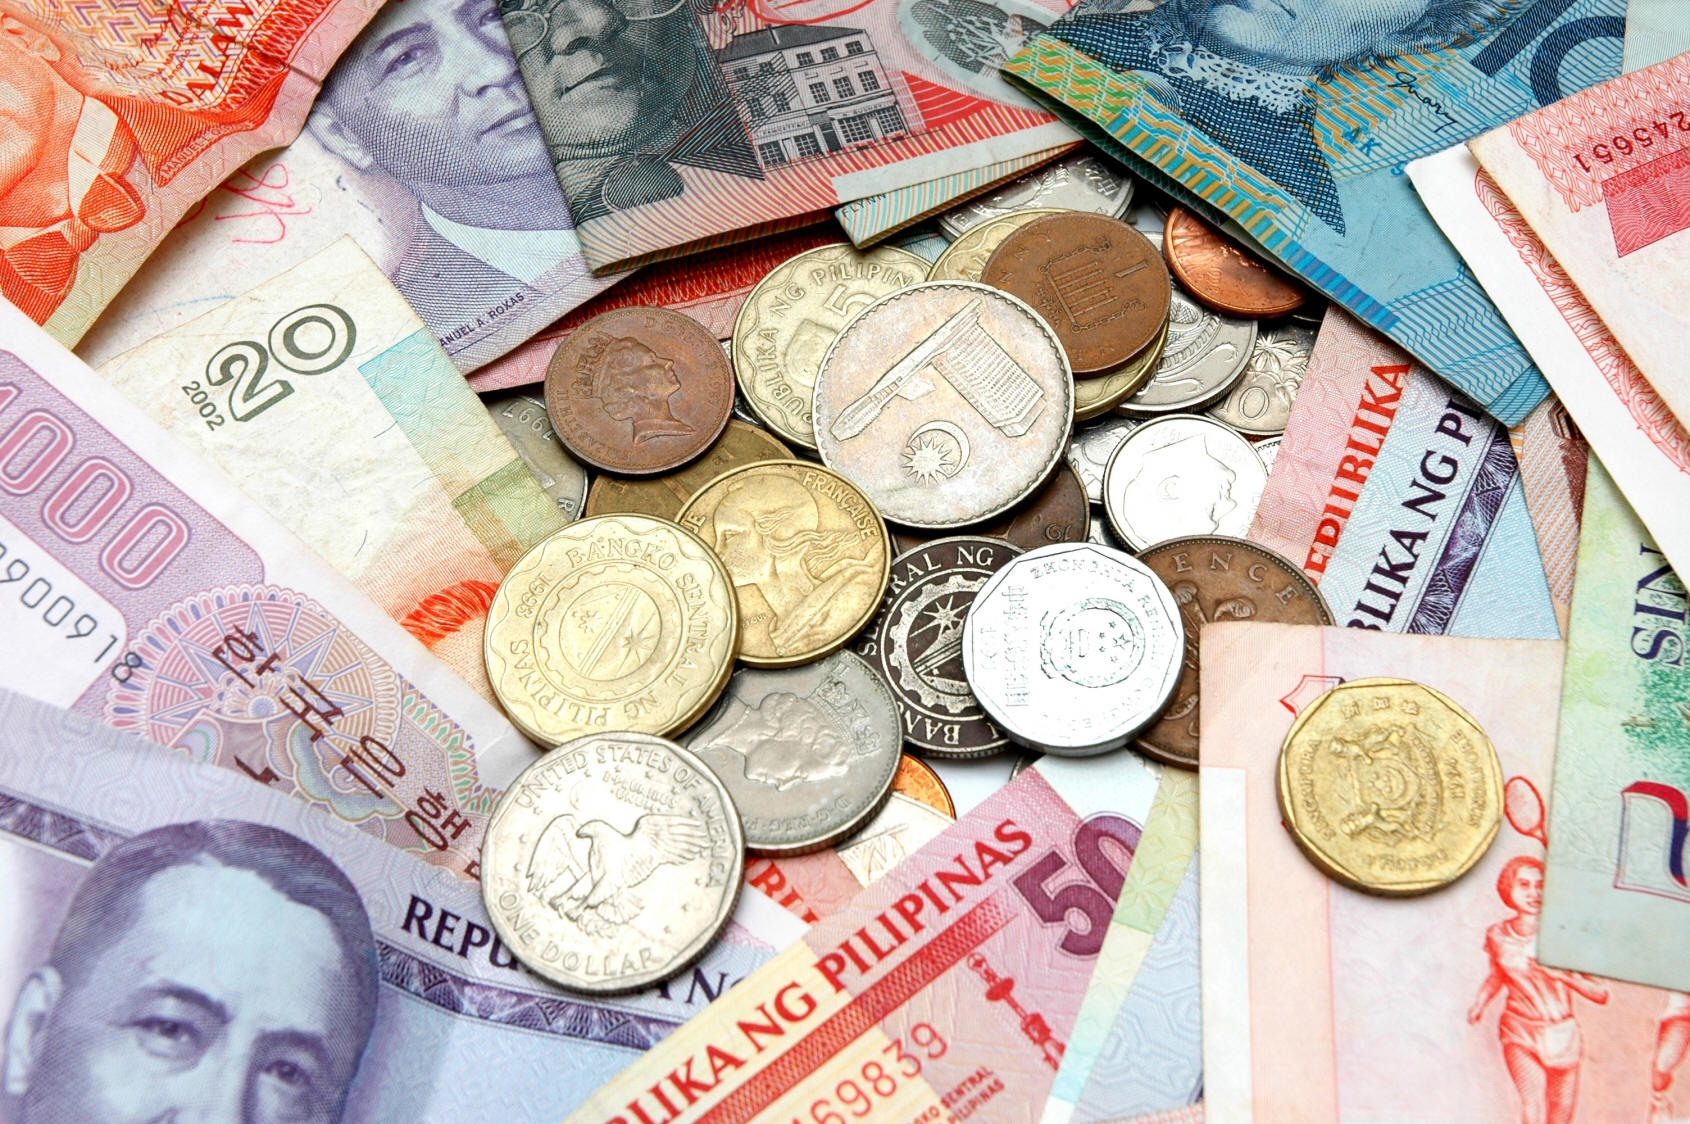 Foreign currency shortages are subsiding but will take time to overcome